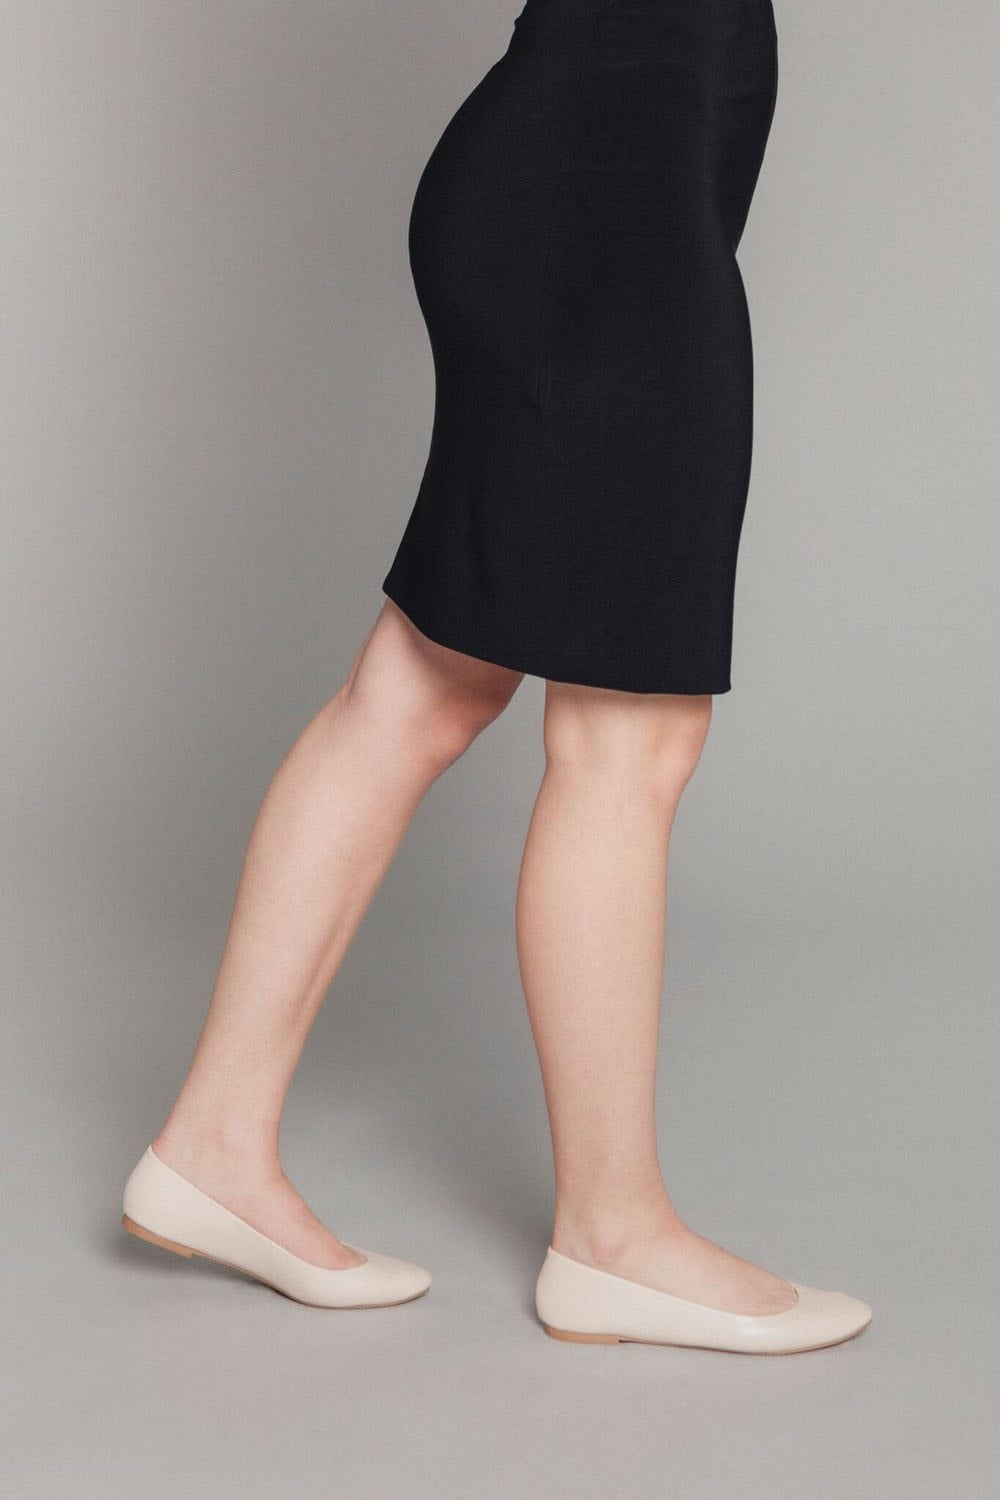 Find great deals on eBay for tube short skirts. Shop with confidence.